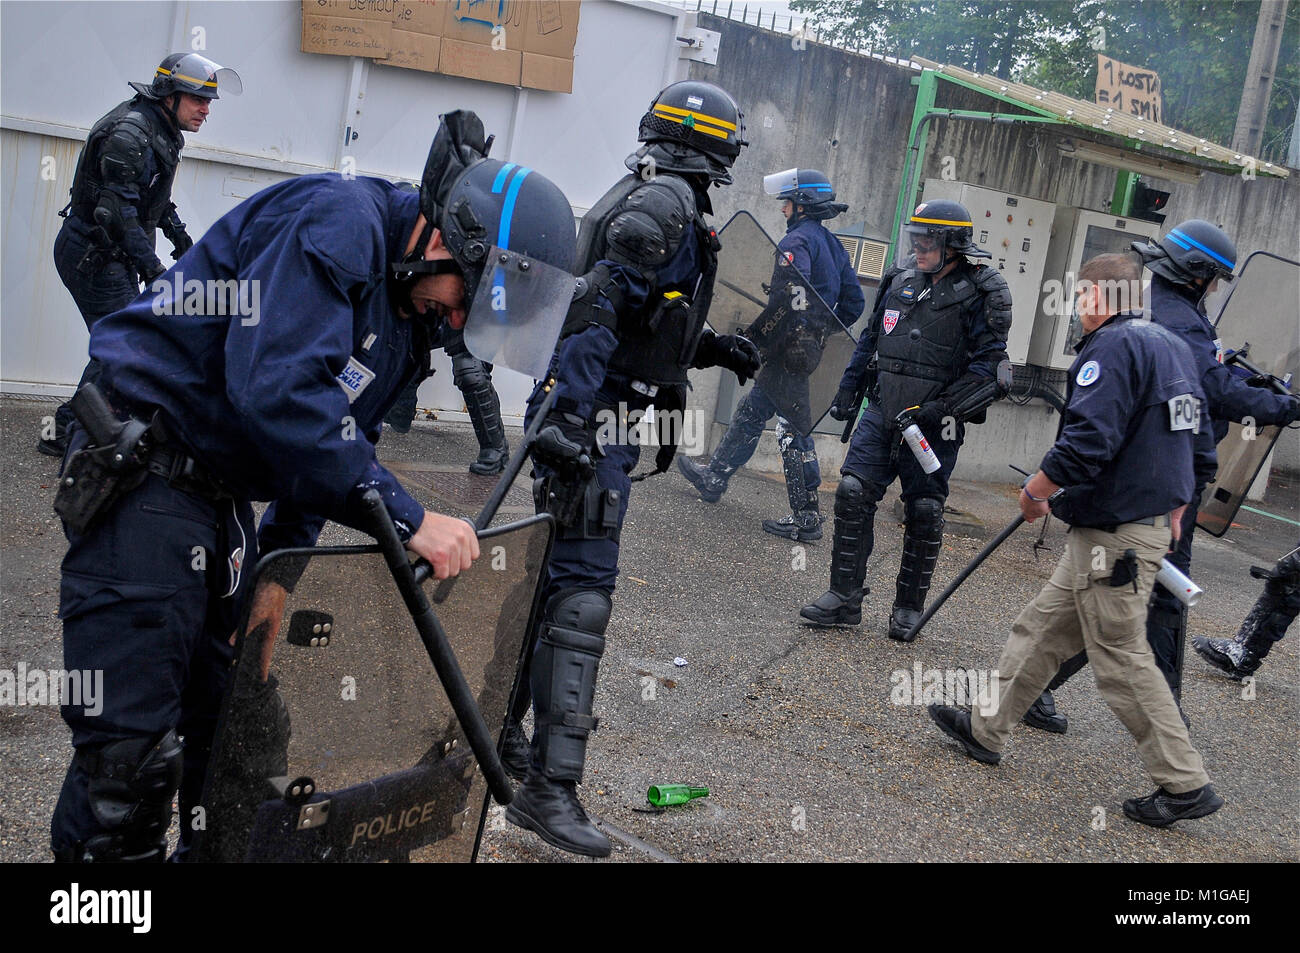 Police officers protect ARKEMA industrial site from protesters intrusion, Pierre-Benite, France - Stock Image